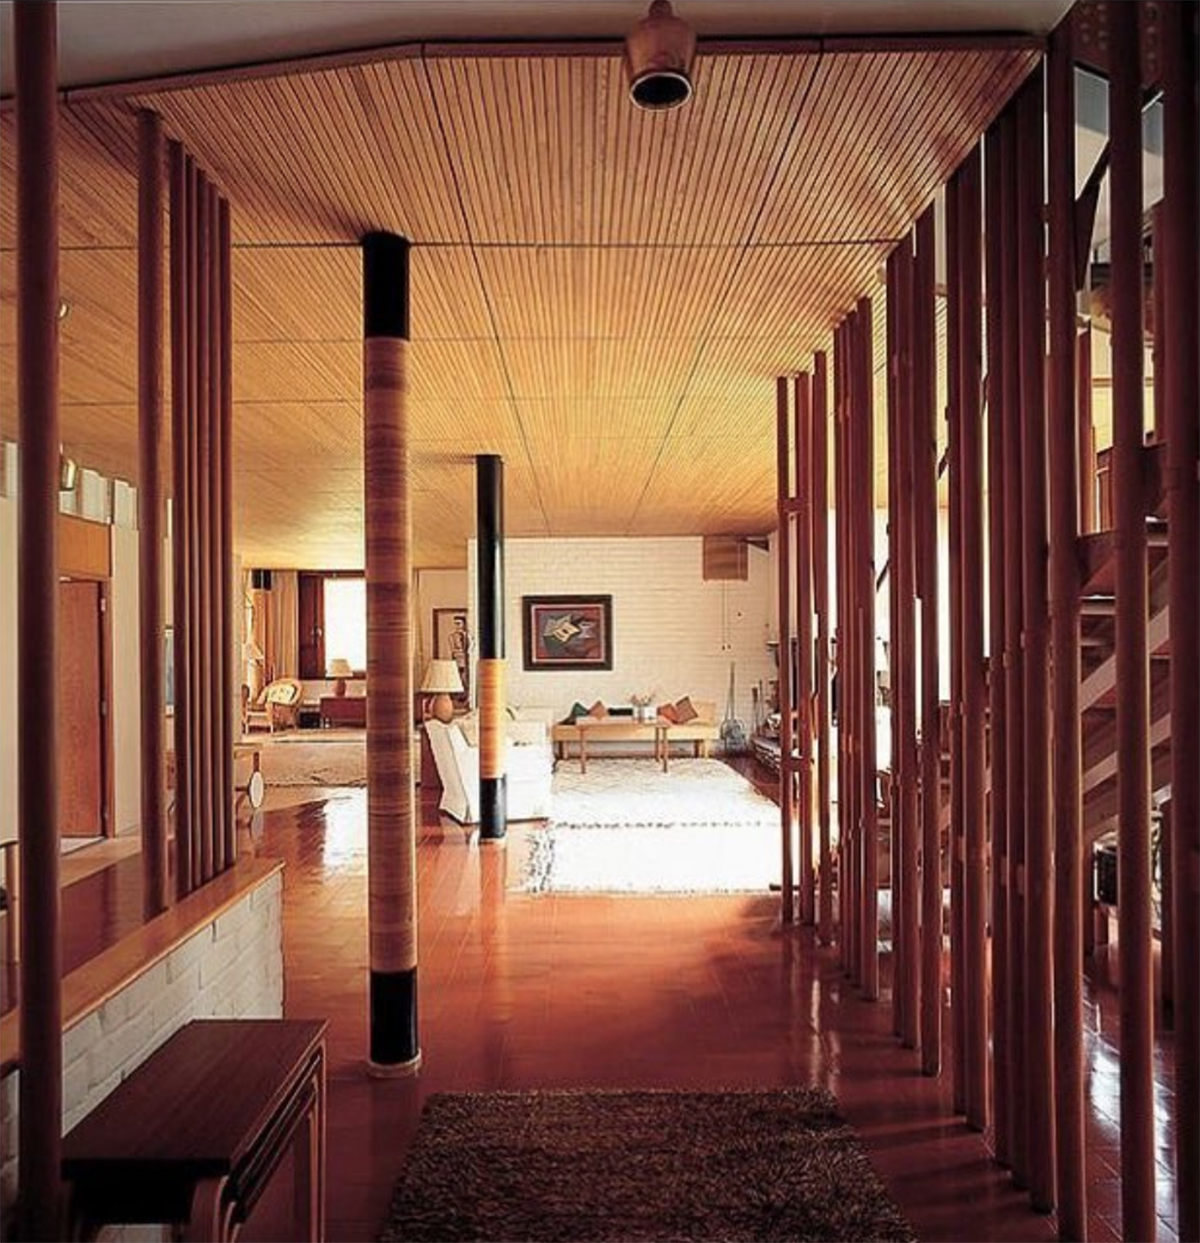 Villa Mairea by Alvar Aalto - photo from Lesfew